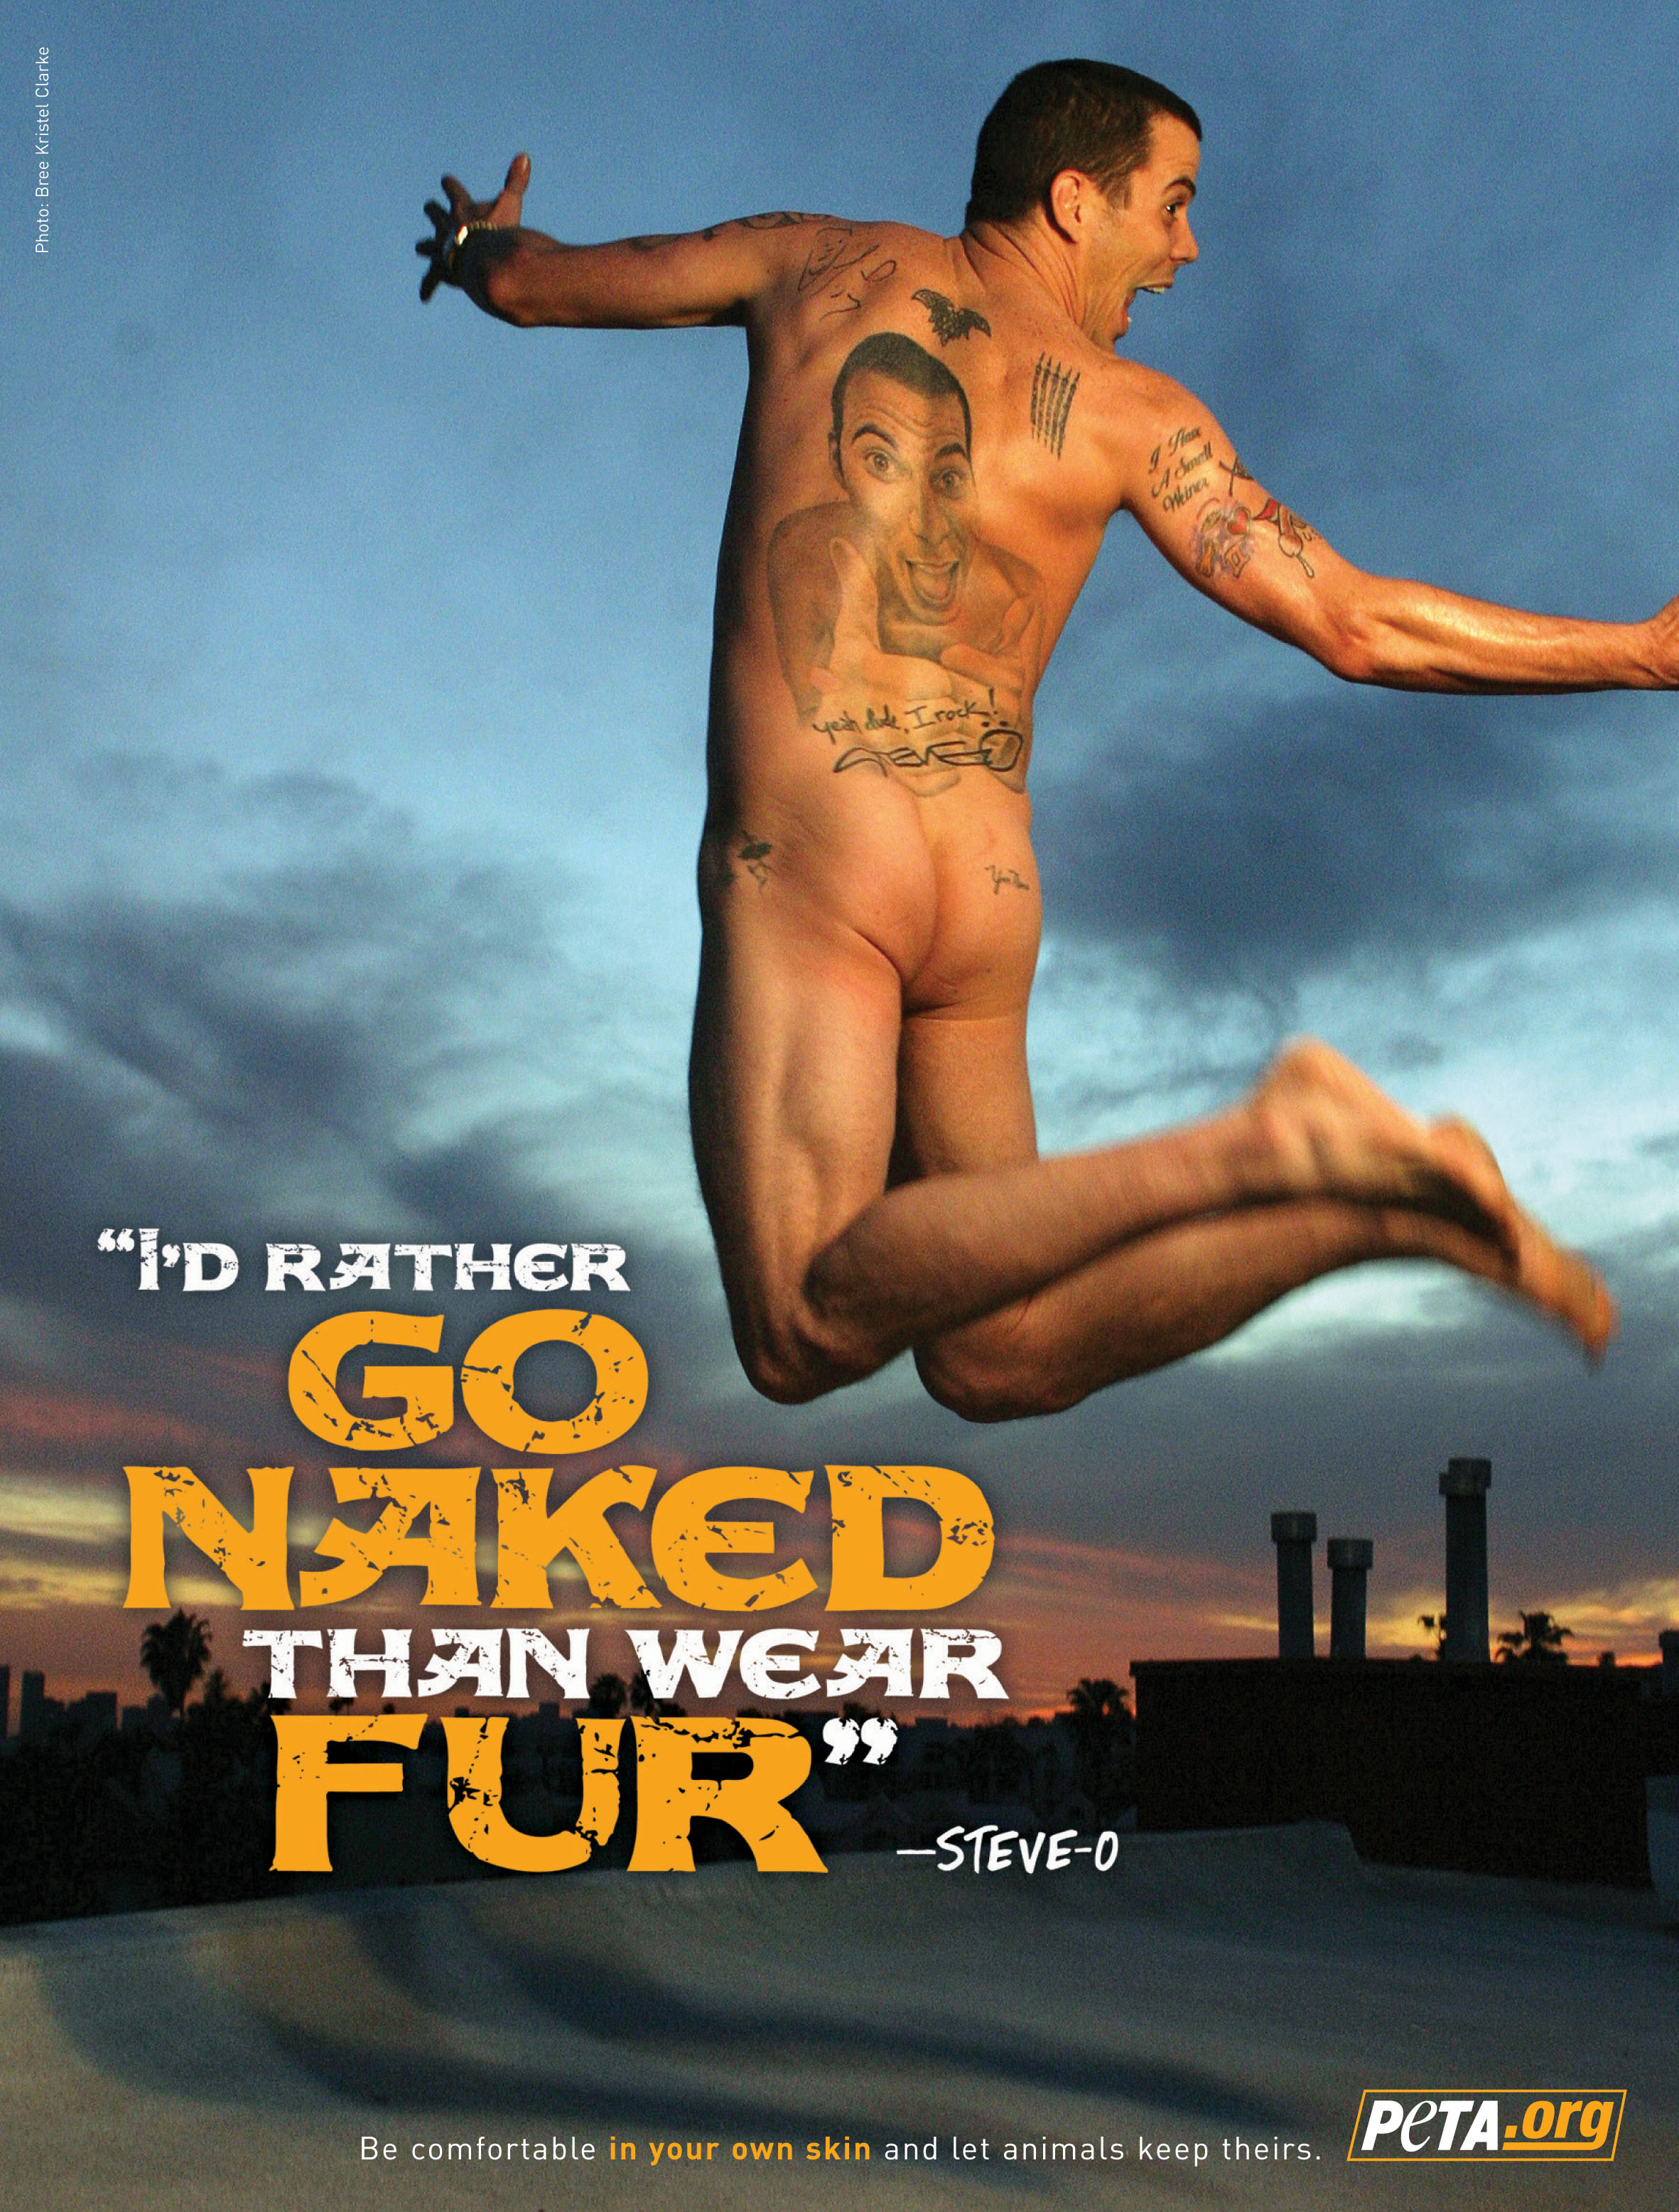 Steve-O: I'd Rather Go Naked Than Wear Fur - PETA